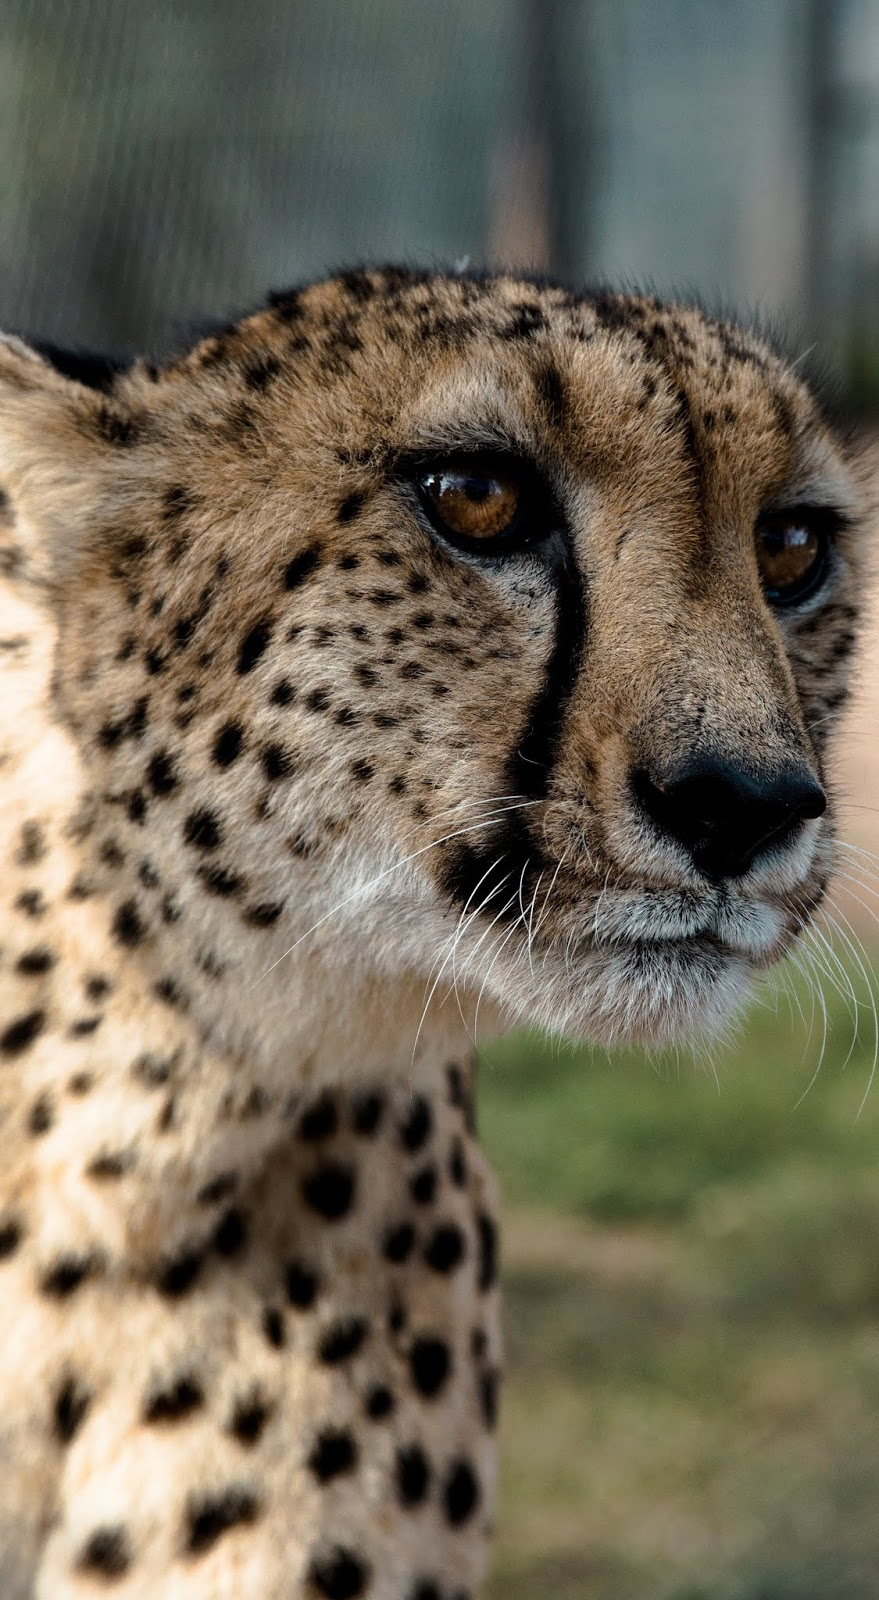 A cheetah's face up close.